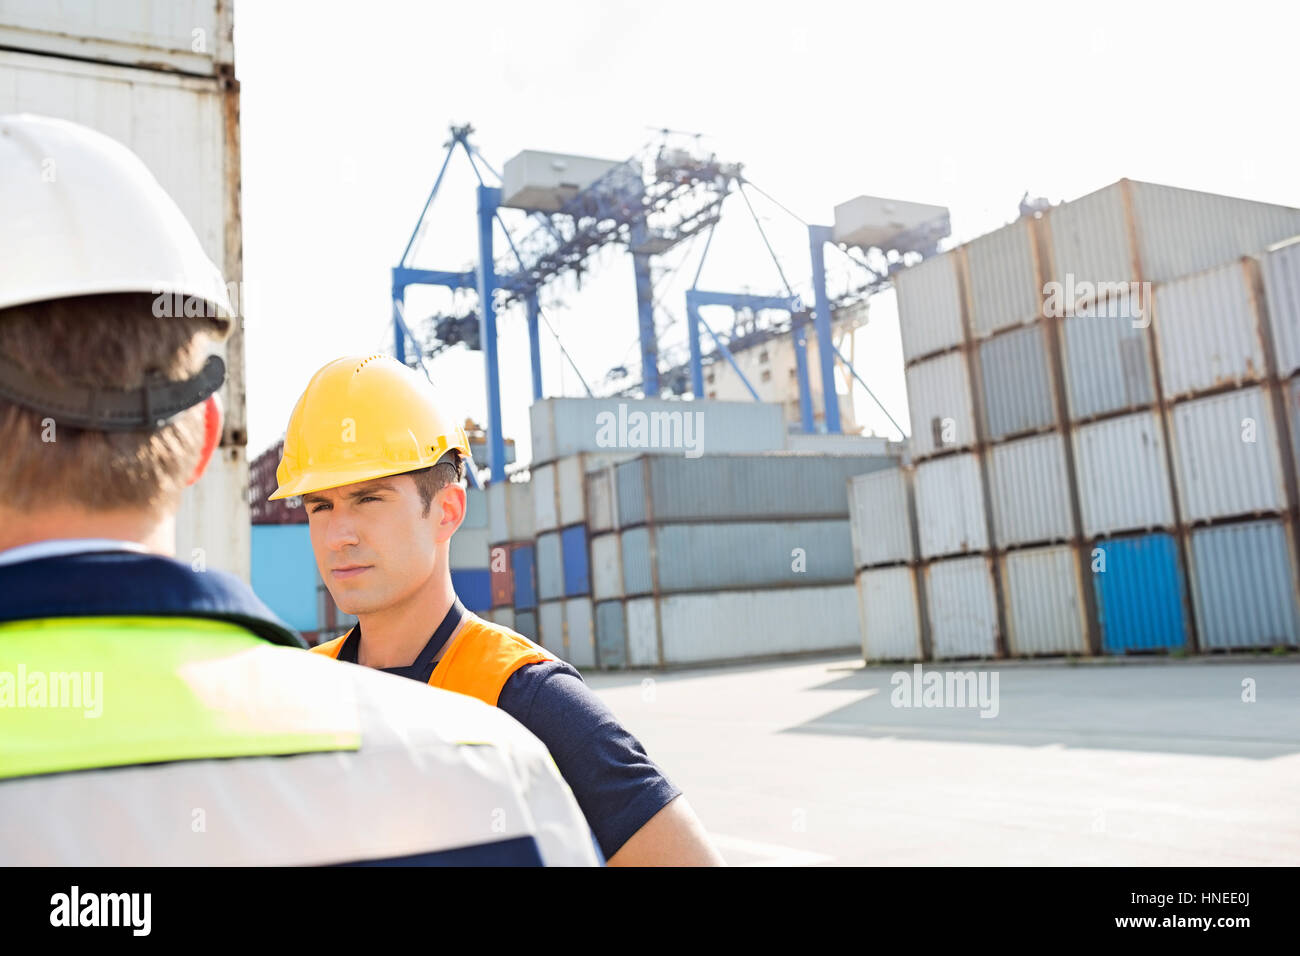 Male workers standing in shipping yard - Stock Image